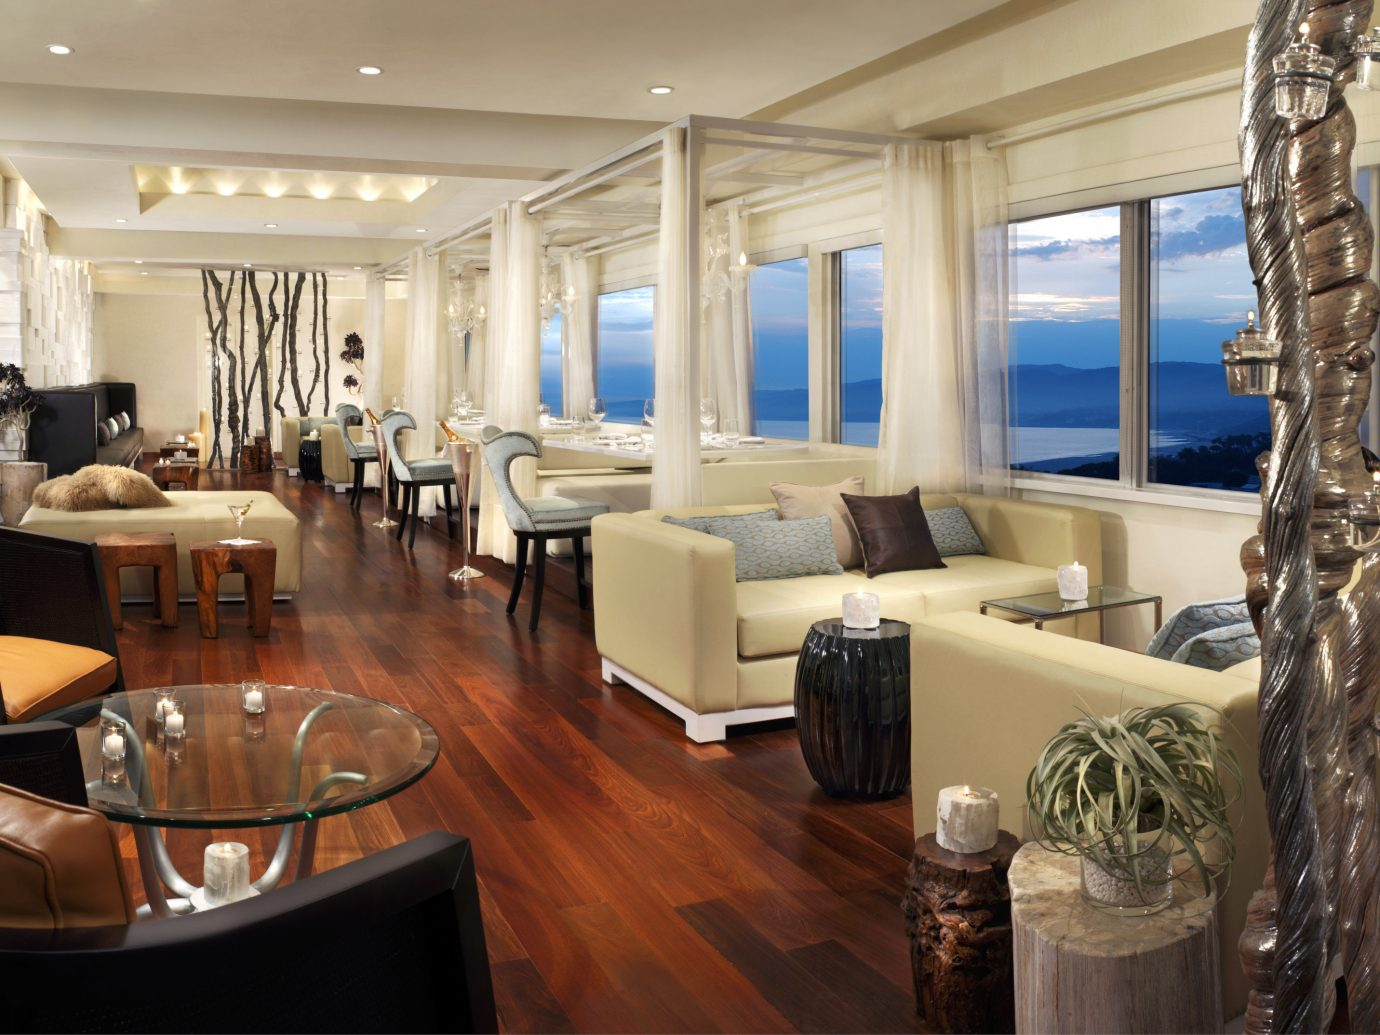 Food + Drink indoor window floor ceiling room property dining room yacht estate living room interior design home Lobby condominium restaurant Suite real estate Boat Design Dining passenger ship Resort furniture dining table